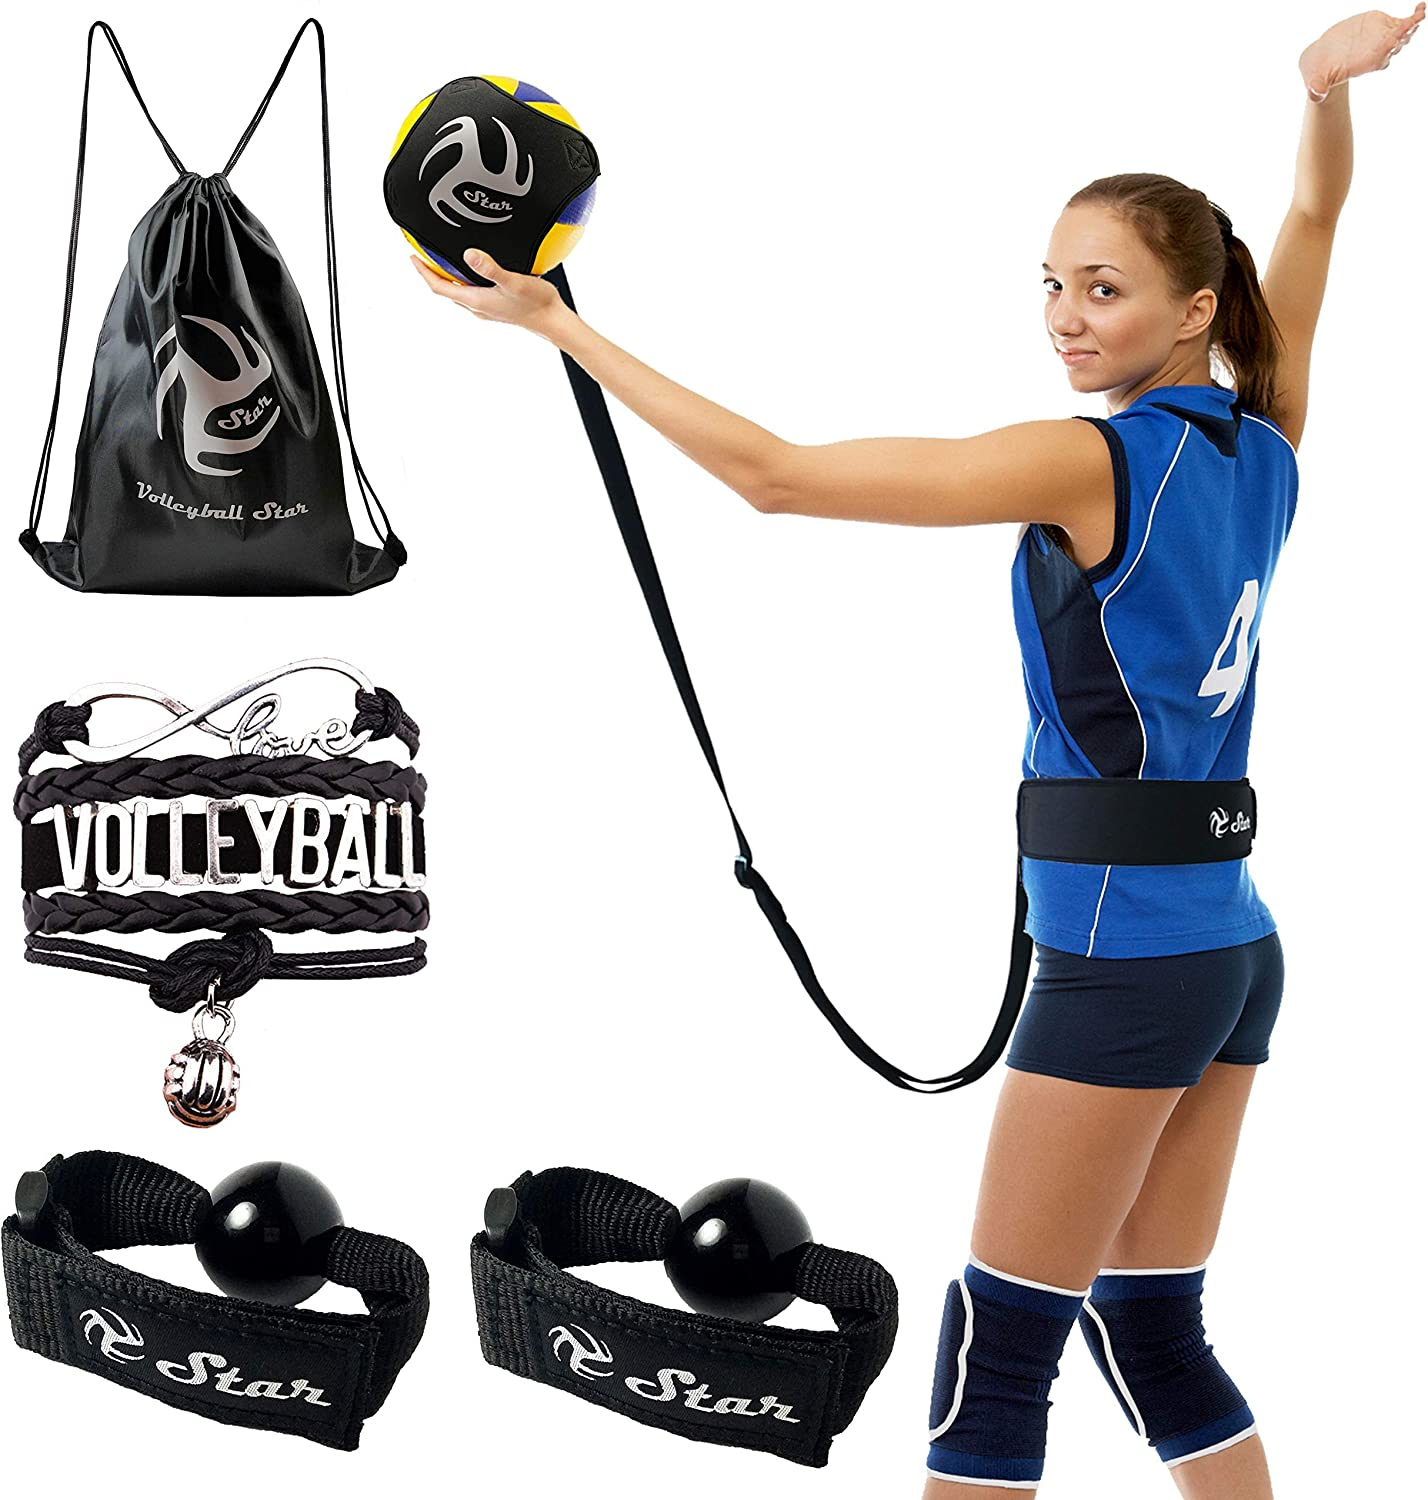 Volleyball Star Training Equipment - 1 Ball Rebounder for Solo Practice Your Serve And Spike +2 Setting Trainer Straps For a Proper Hand Placement +1 Drawstring Backpack +1 Handmade Bracelet : Sports & Outdoors